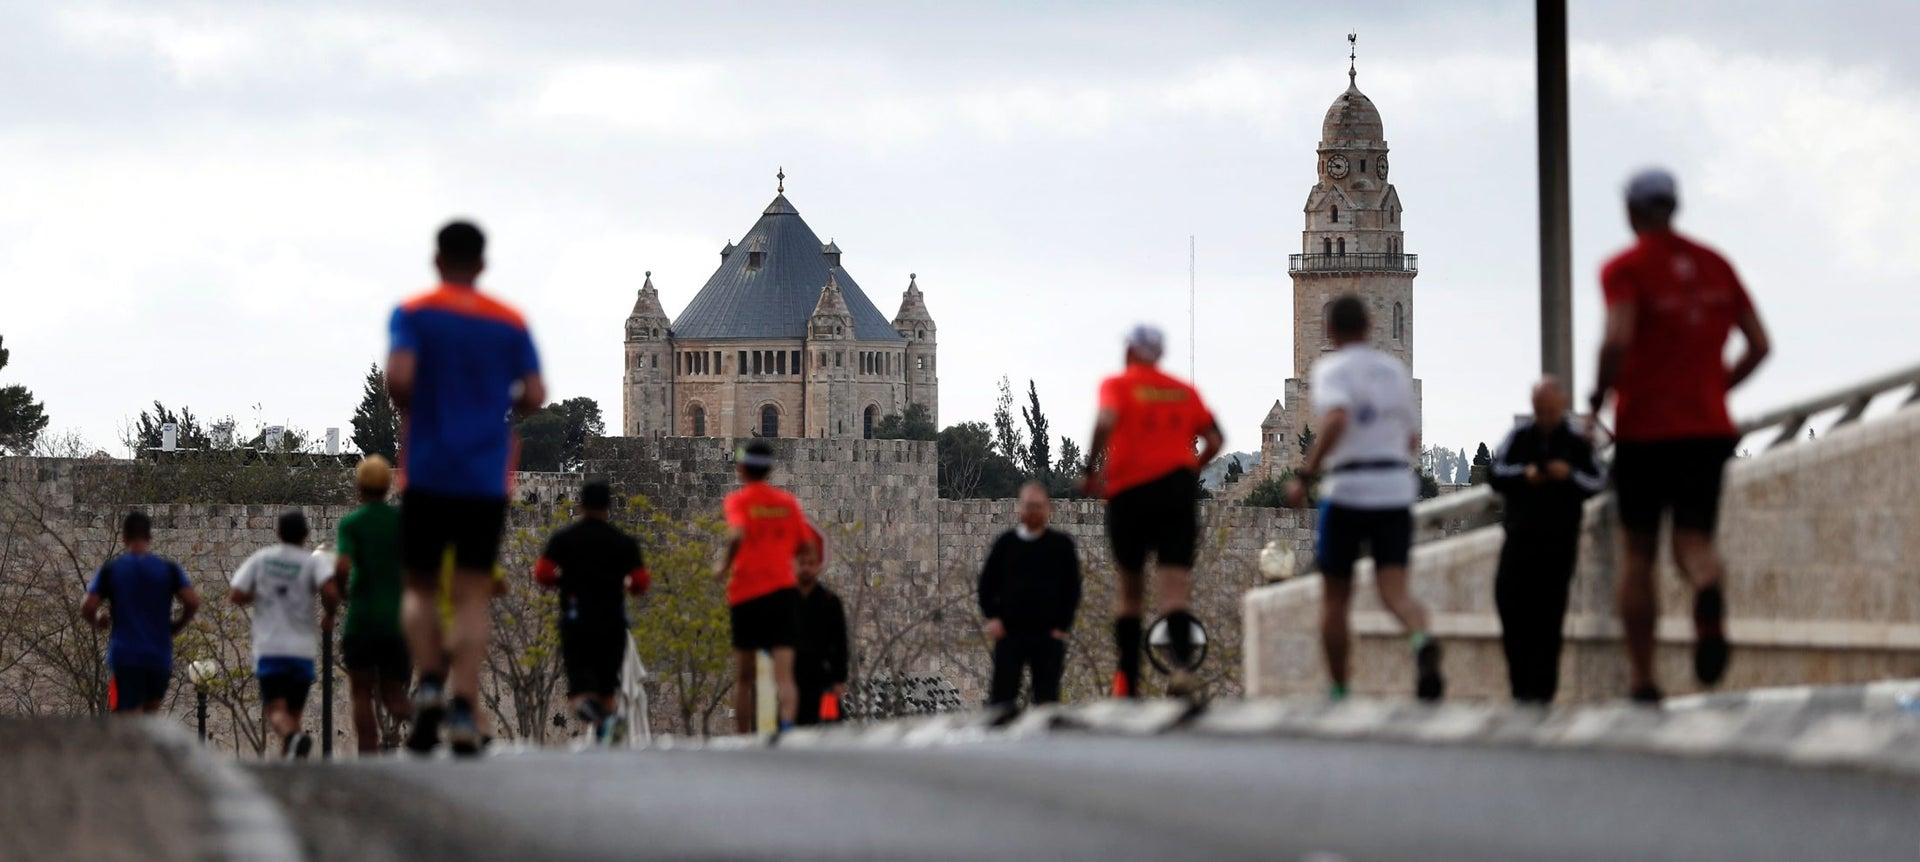 Competitors run towards Jerusalem's Old City with the Dormition Abbey (L) and the Nabi Daud mosque (R) on background during the 6th Jerusalem's marathon, on March 18, 2016.